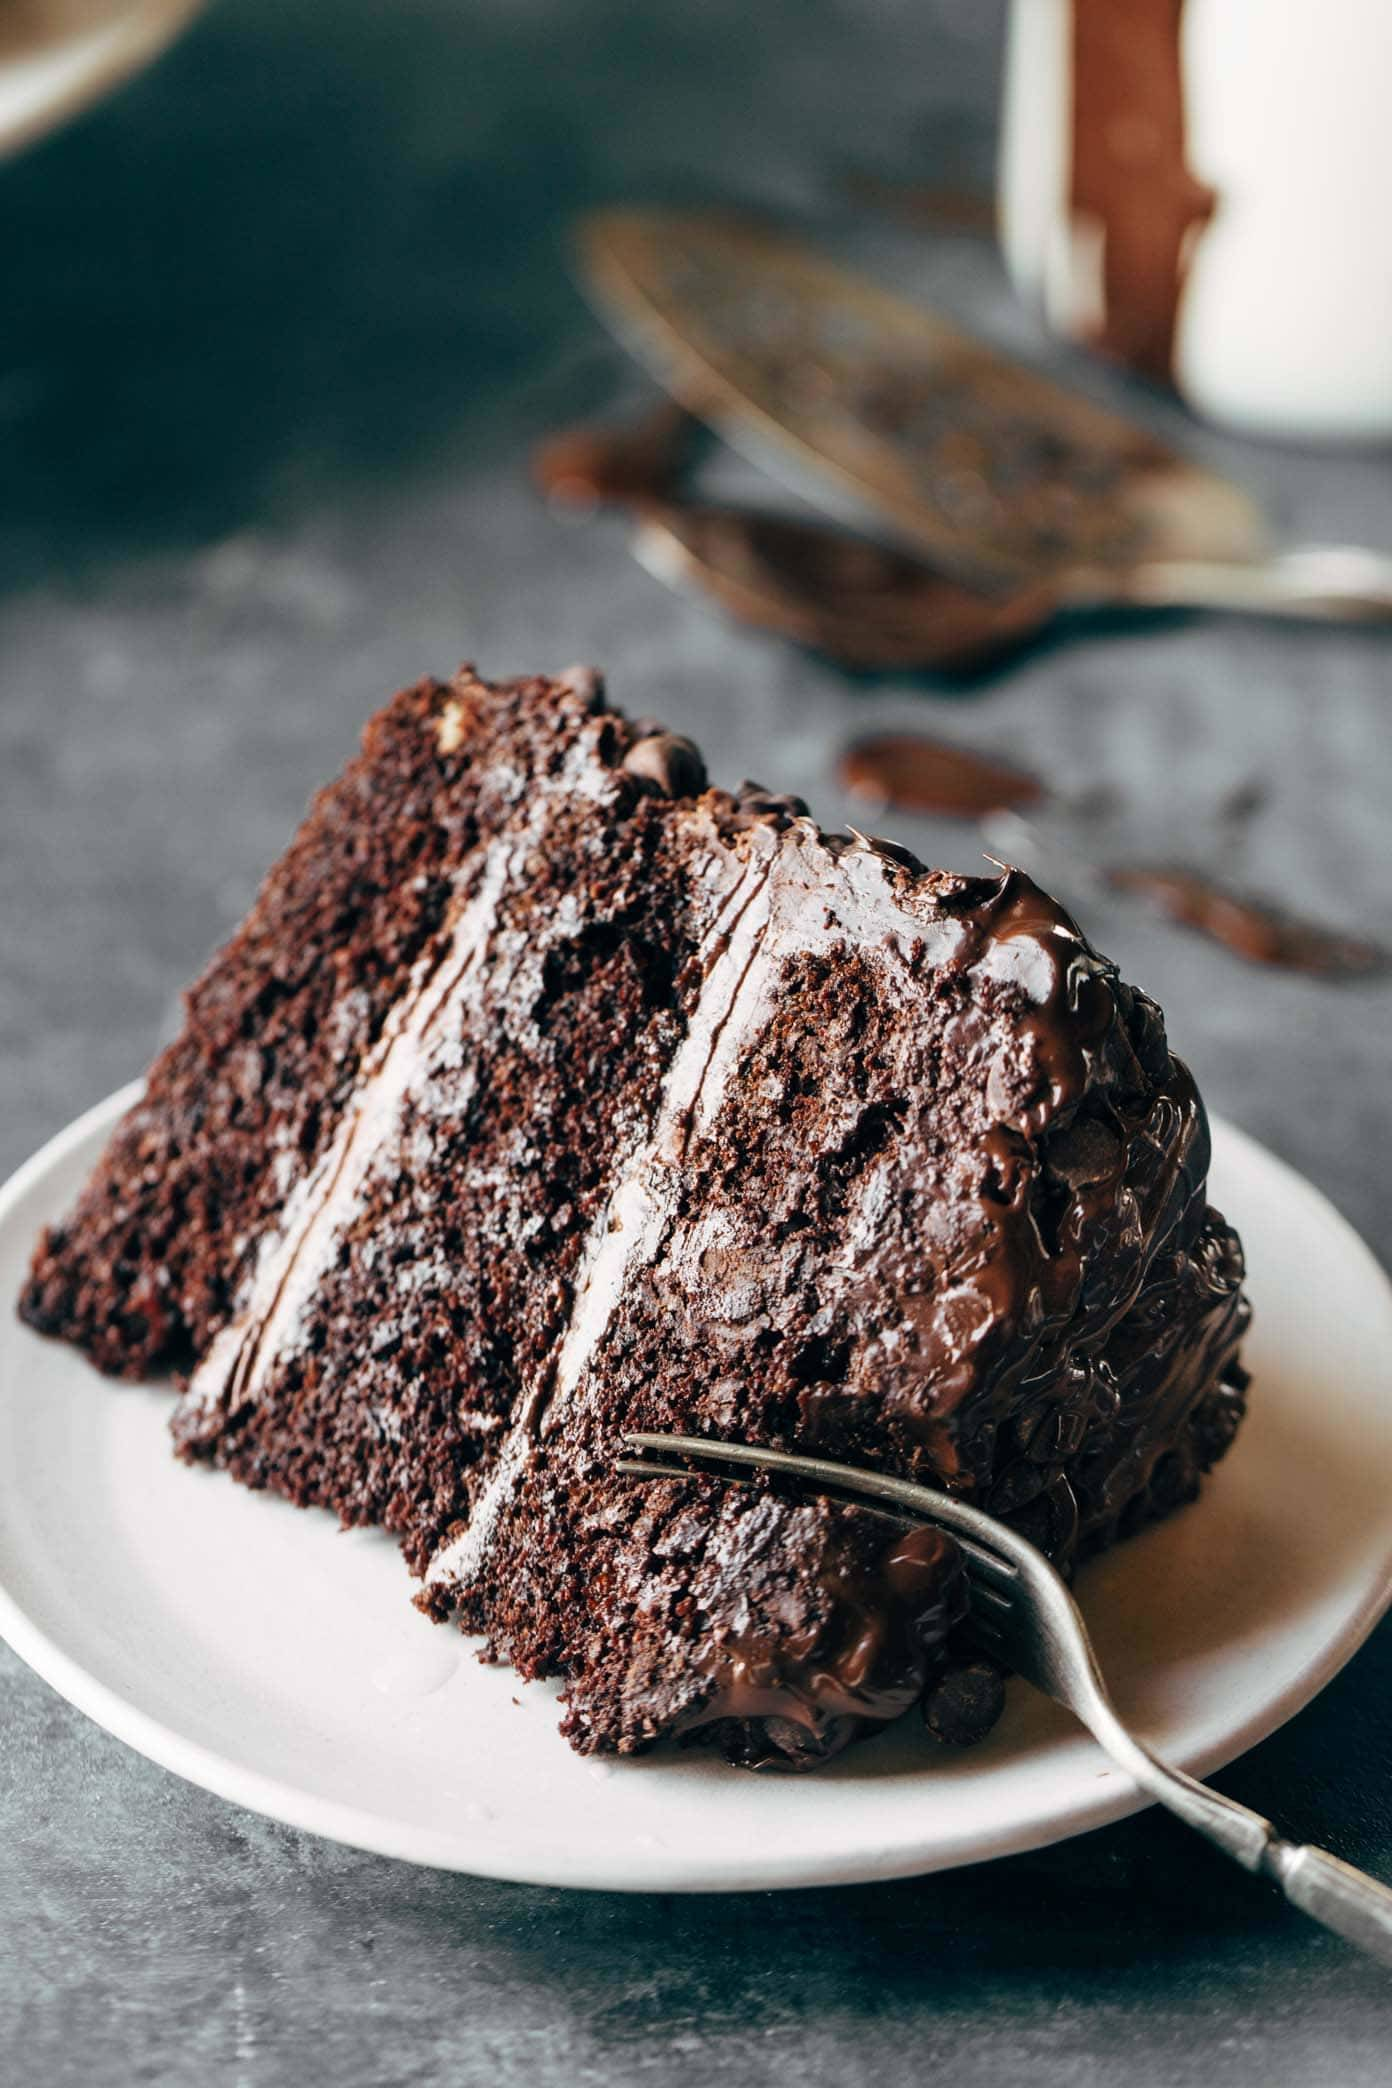 Chocolate Cake With Chocolate Chips On Top